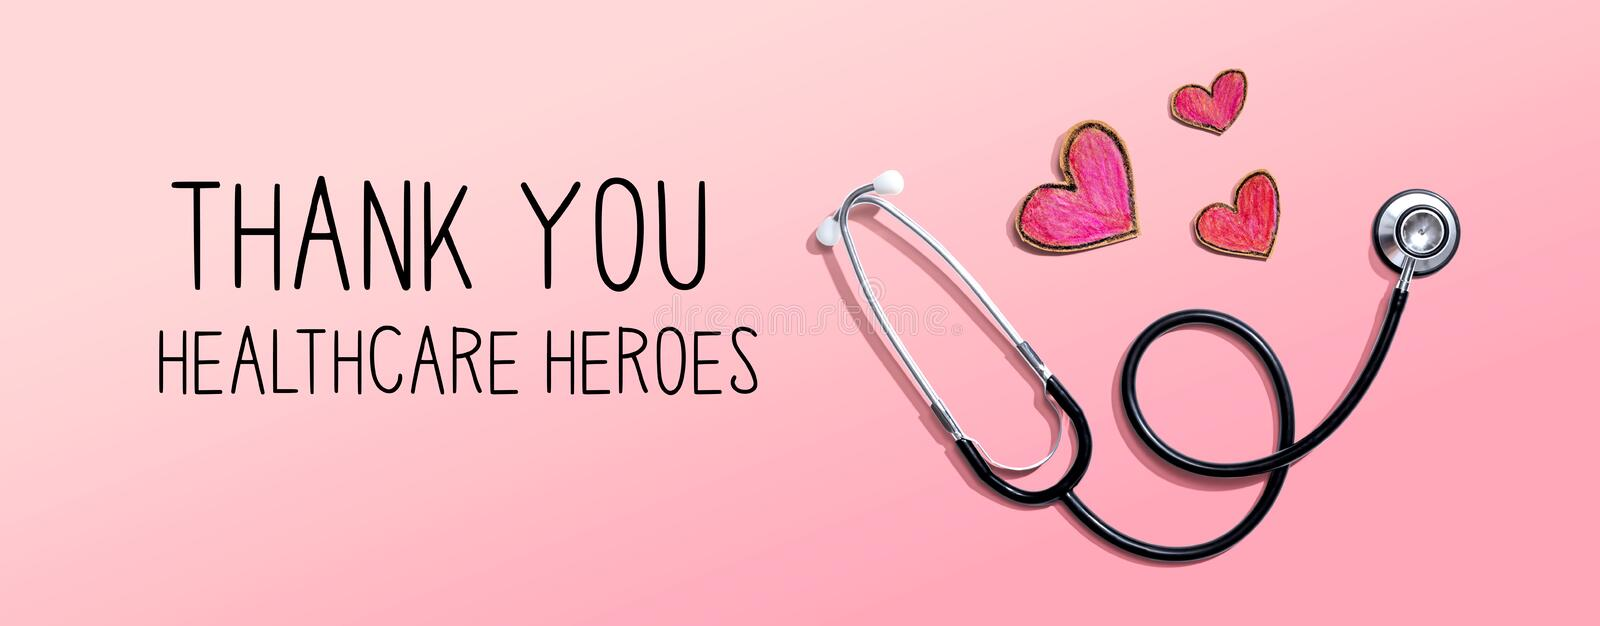 Thank You Healthcare Heroes message with stethoscope and hearts. Thank You Healthcare Heroes message with stethoscope and hand drawing hearts royalty free stock photo